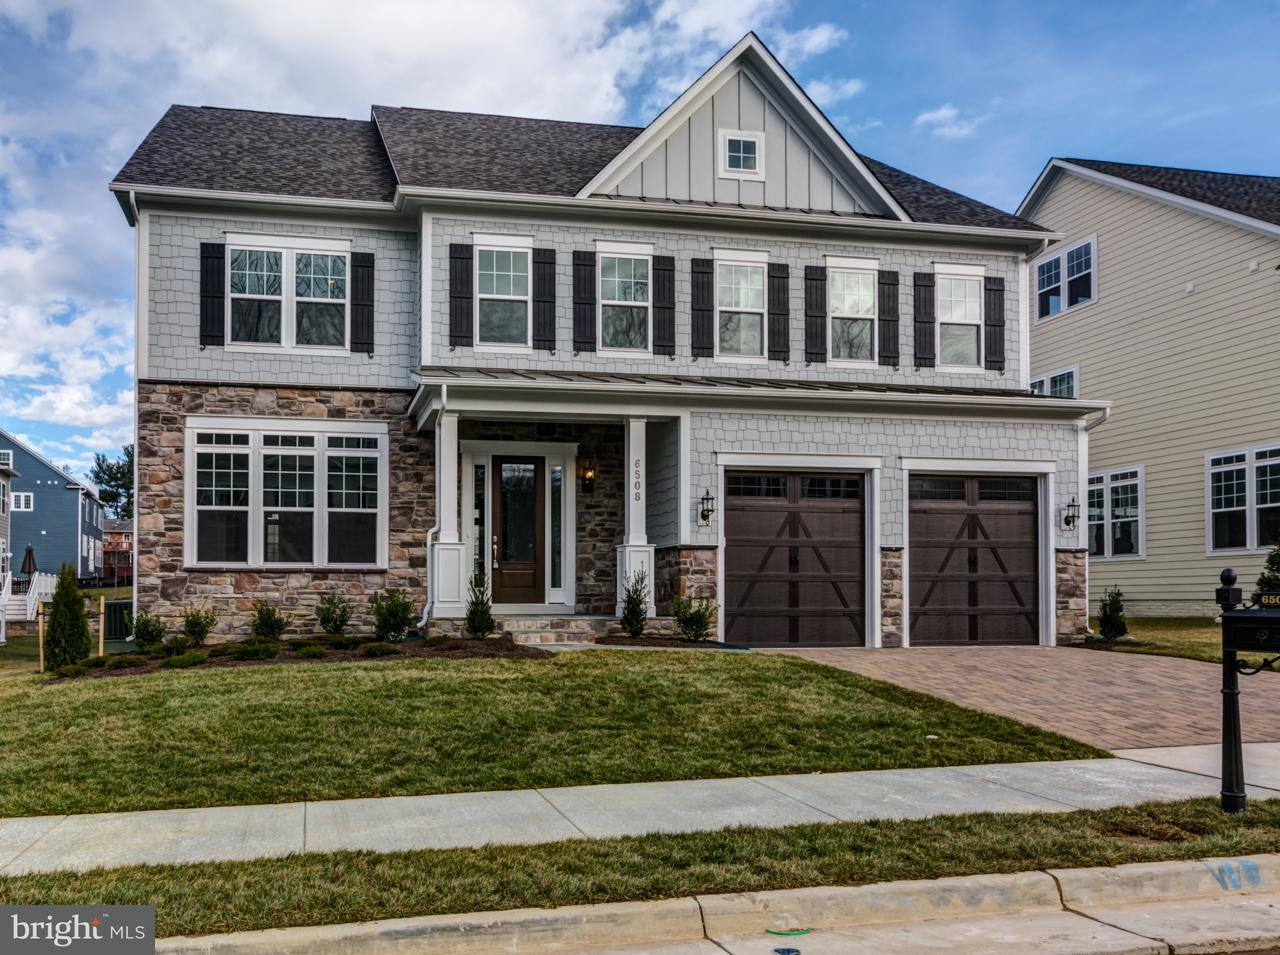 Single Family Home for Sale at 6508 MANOR RIDGE Court 6508 MANOR RIDGE Court Falls Church, Virginia 22043 United States